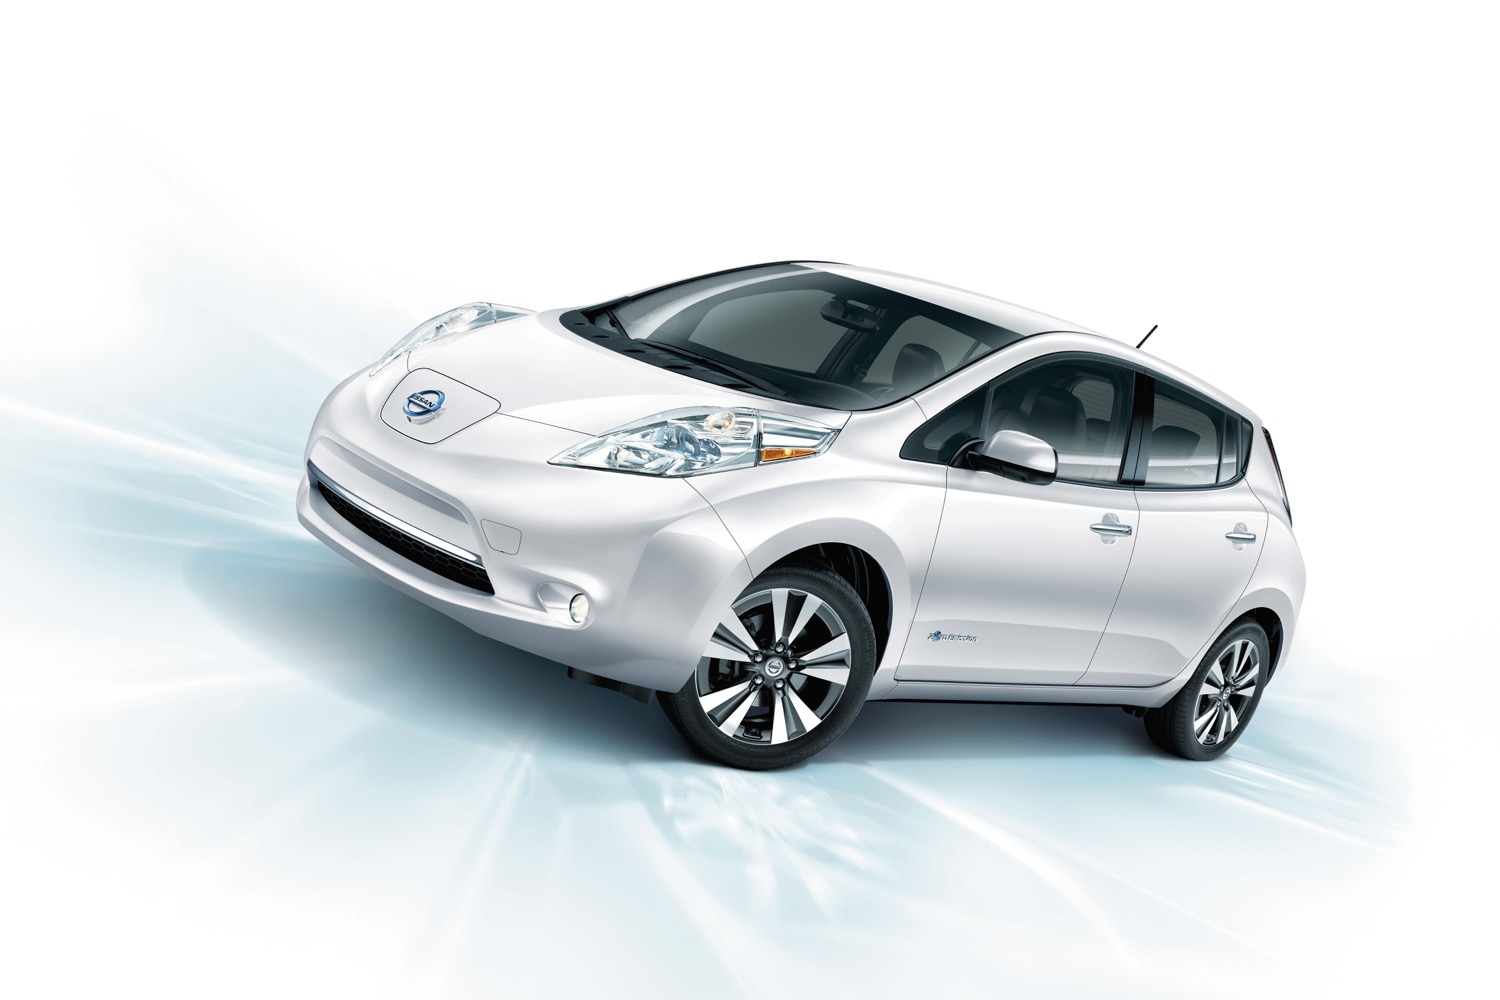 2017 Nissan Leaf Specs All 30 Kwh Batteries Otherwise